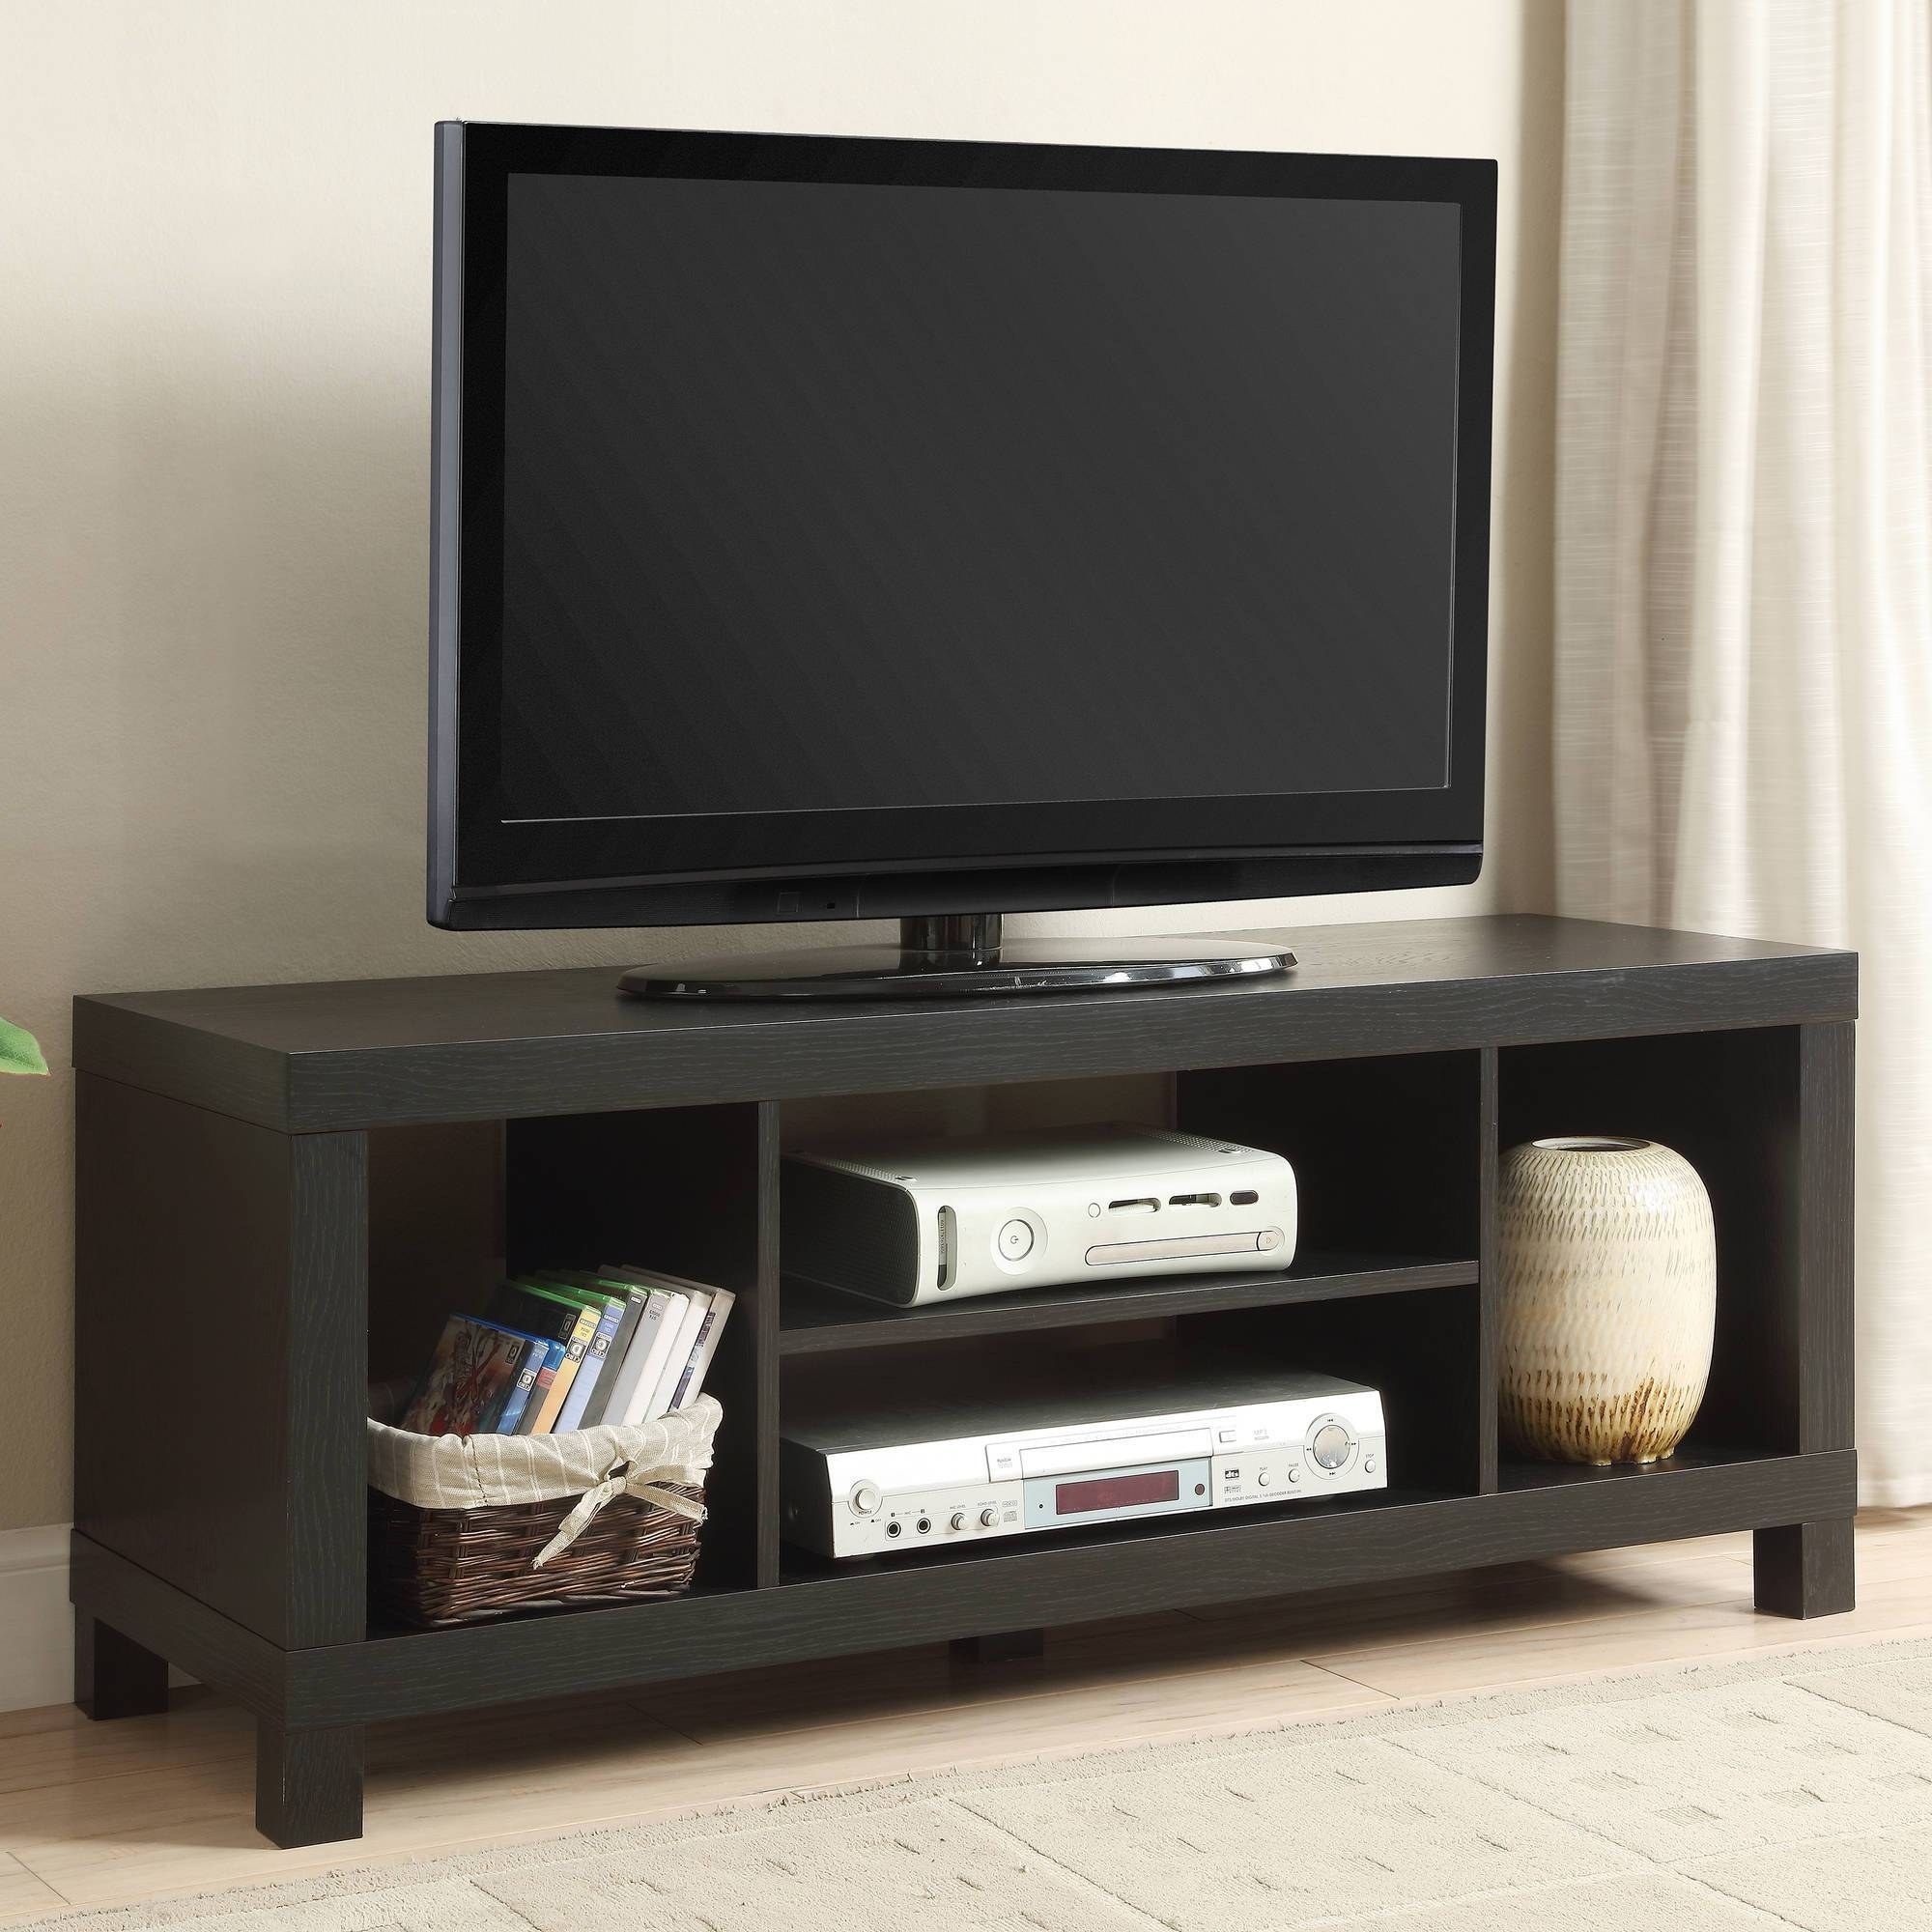 """Black Oak Tv Stand For Tvs Up To 42"""" – Walmart With Regard To Long Black Tv Stands (View 14 of 15)"""